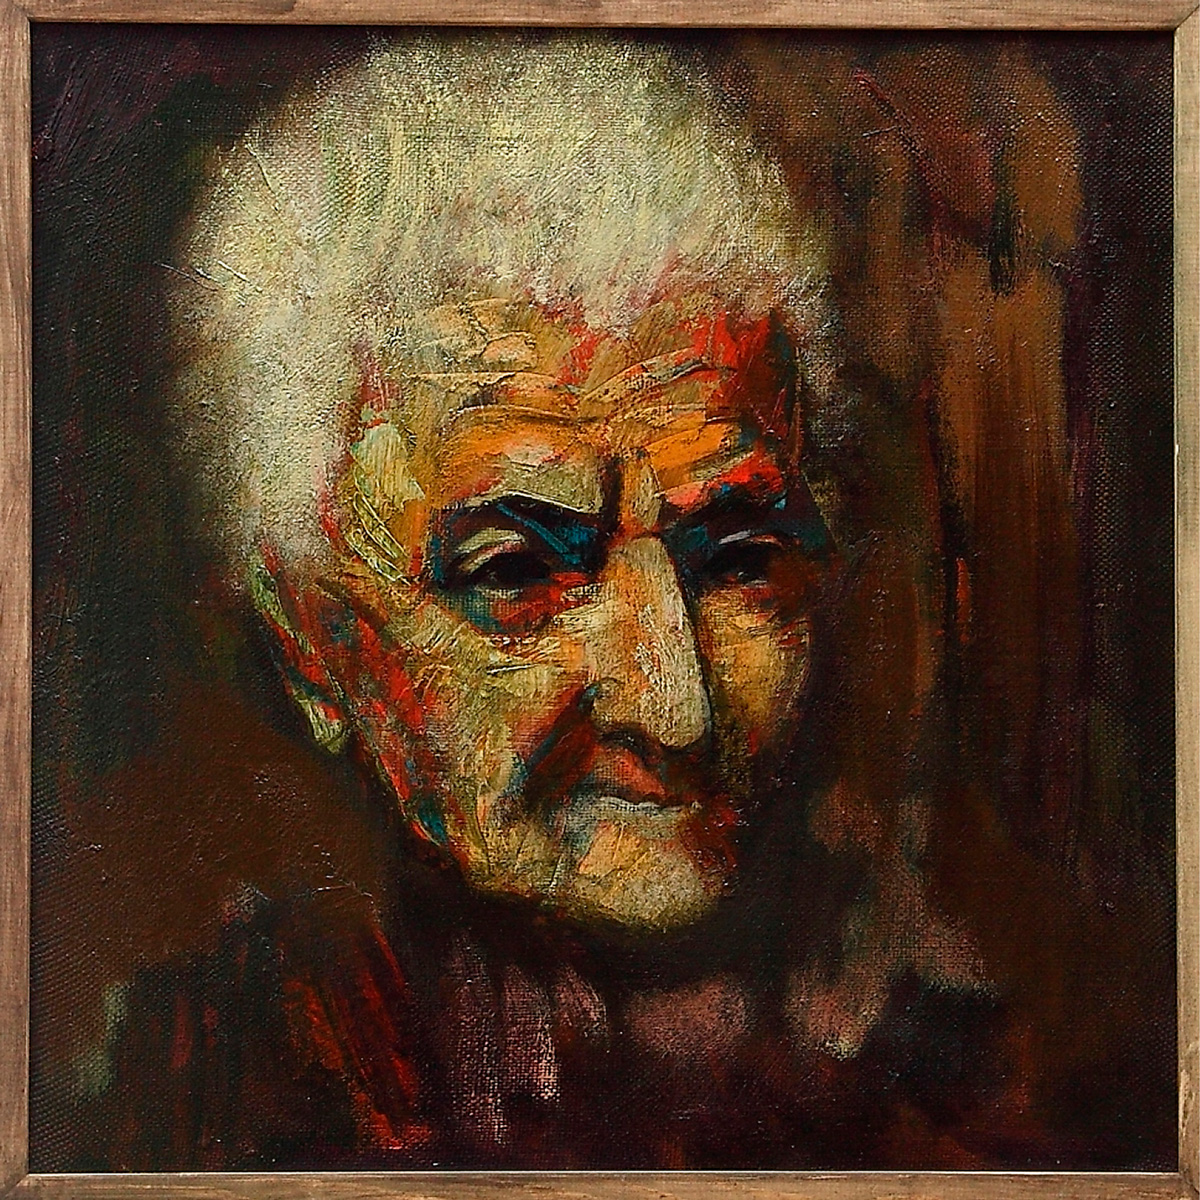 старухи 50х50 х - Portrait of an Oldwoman, 50x50, oil on canvas, 2011